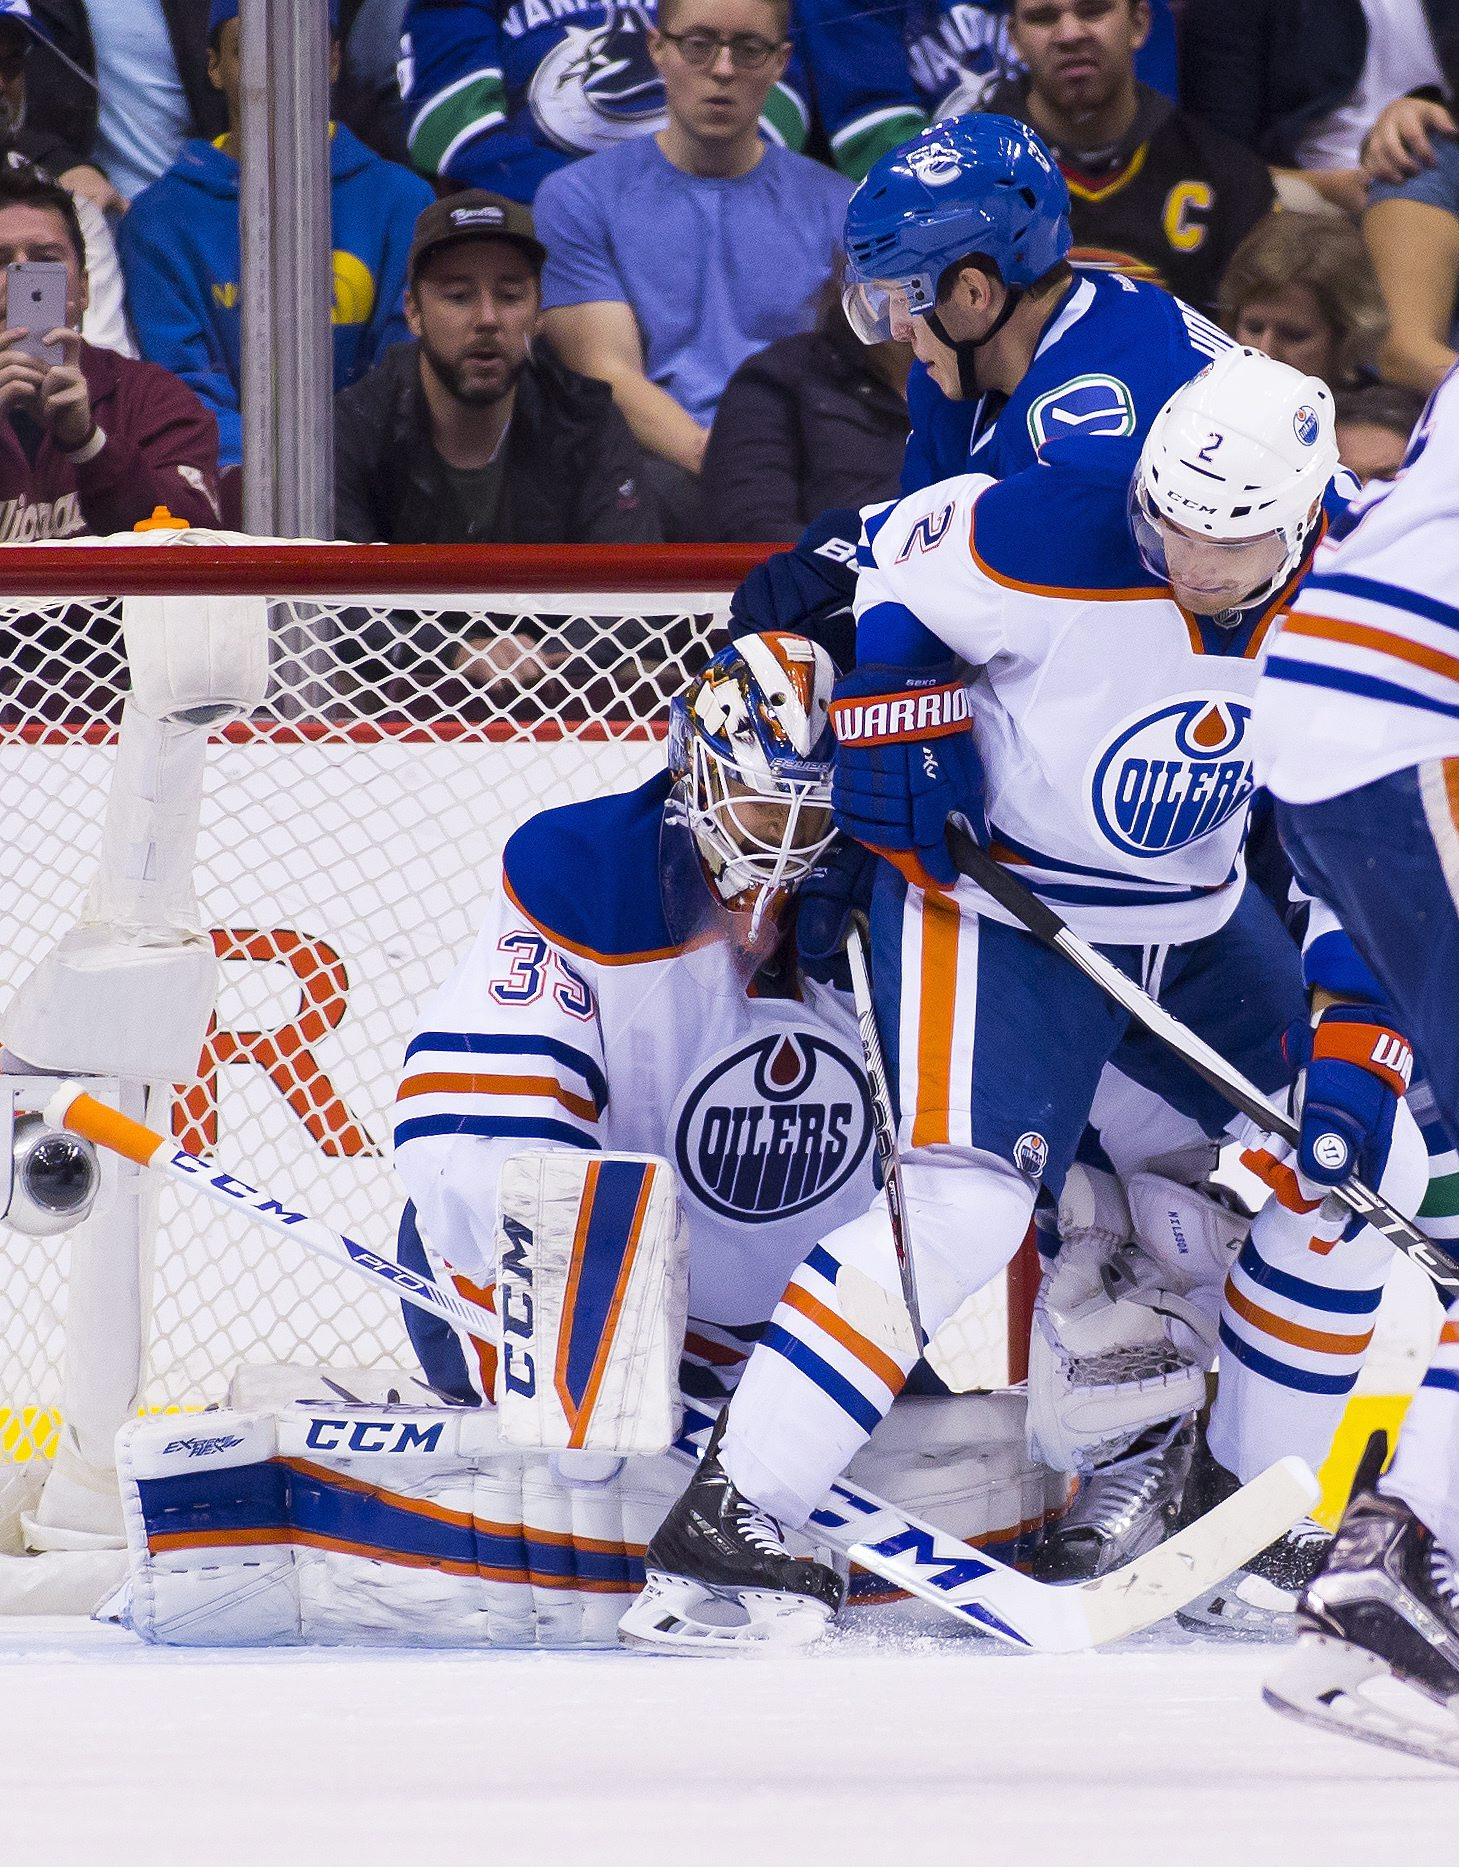 Edmonton Oilers goaltender Anders Nilsson (39) allows a goal by Matt Bartkowski near Vancouver Canucks' Bo Horvat (53) and Edmonton Oilers' Andrej Sekera (2) during the first period of an NHL hockey game Sunday, Oct. 18, 2015, in Vancouver, British Columb